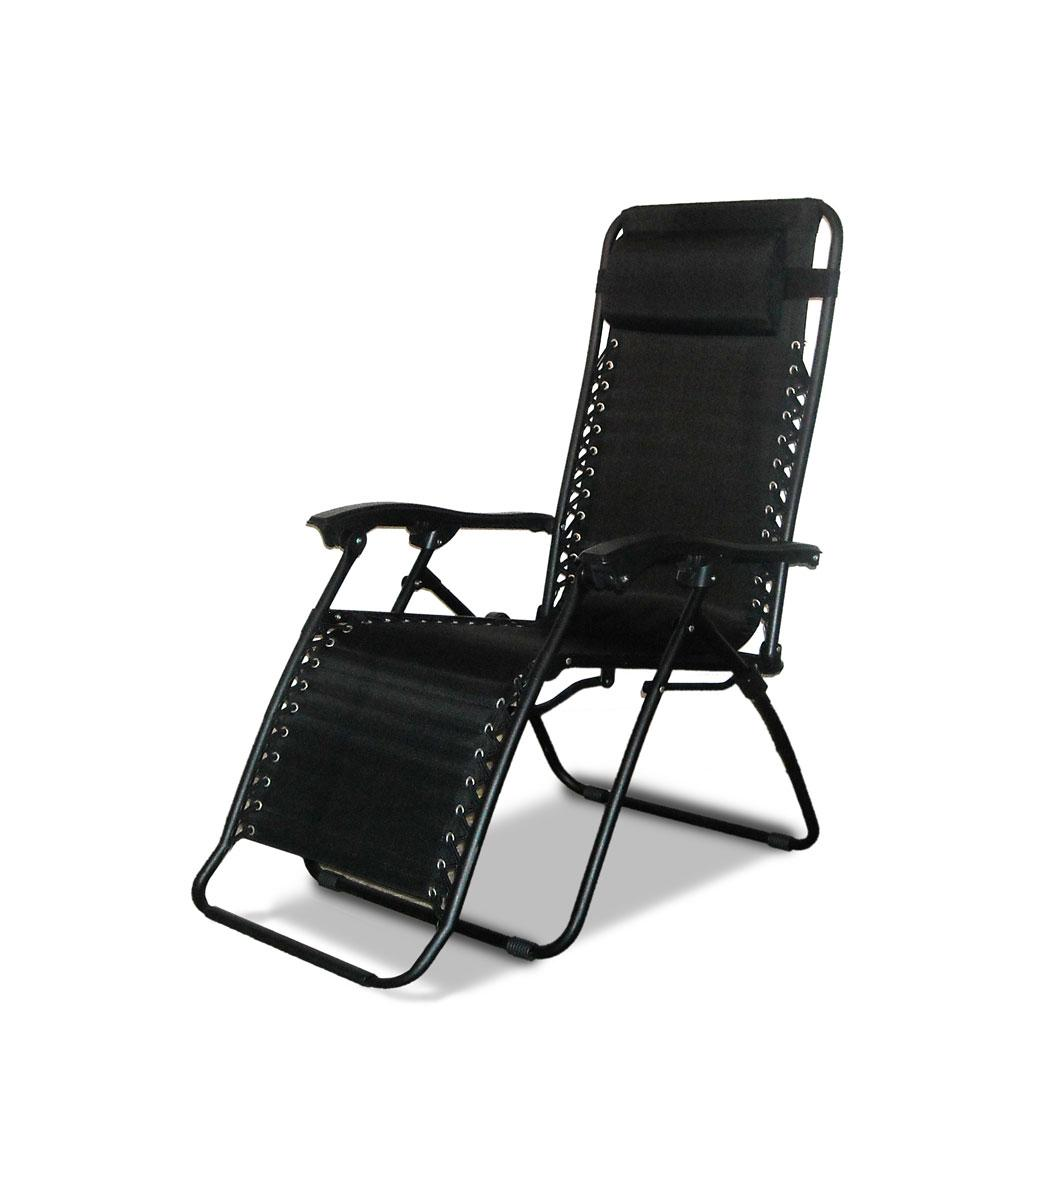 Caravan Canopy Black Zero-Gravity Chair